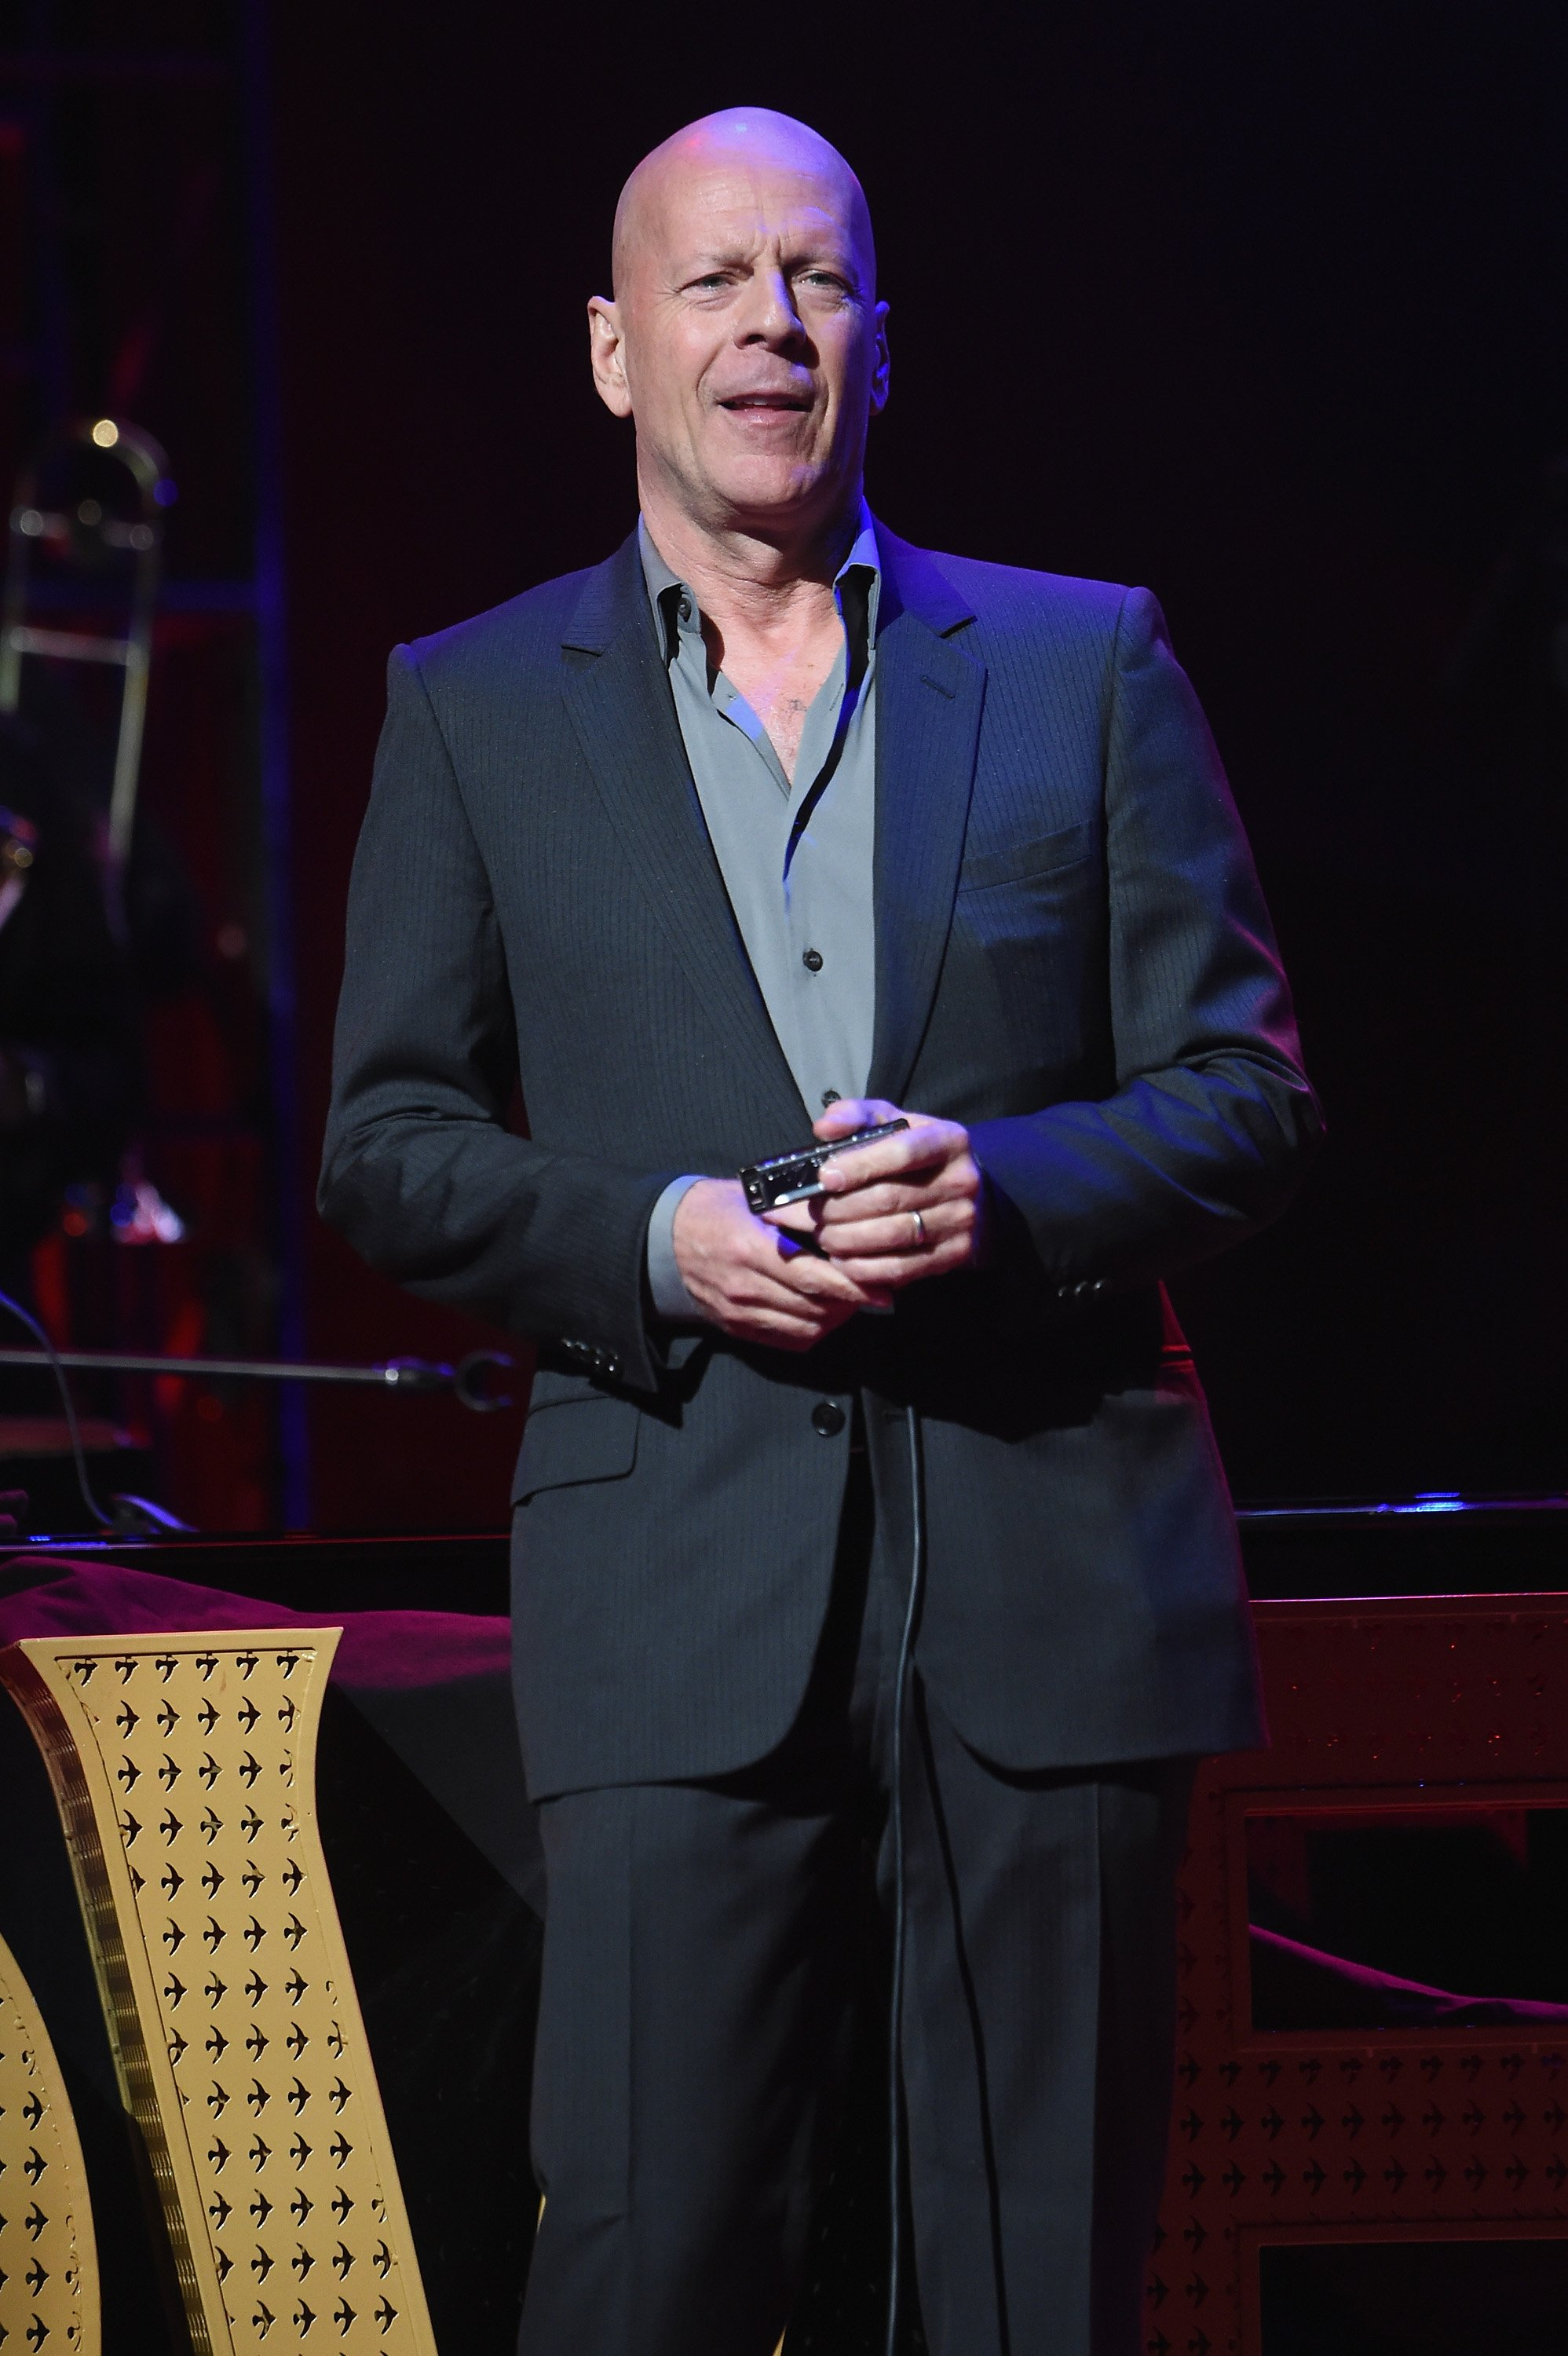 Images Source: Getty Images/Bruce Willis on stage